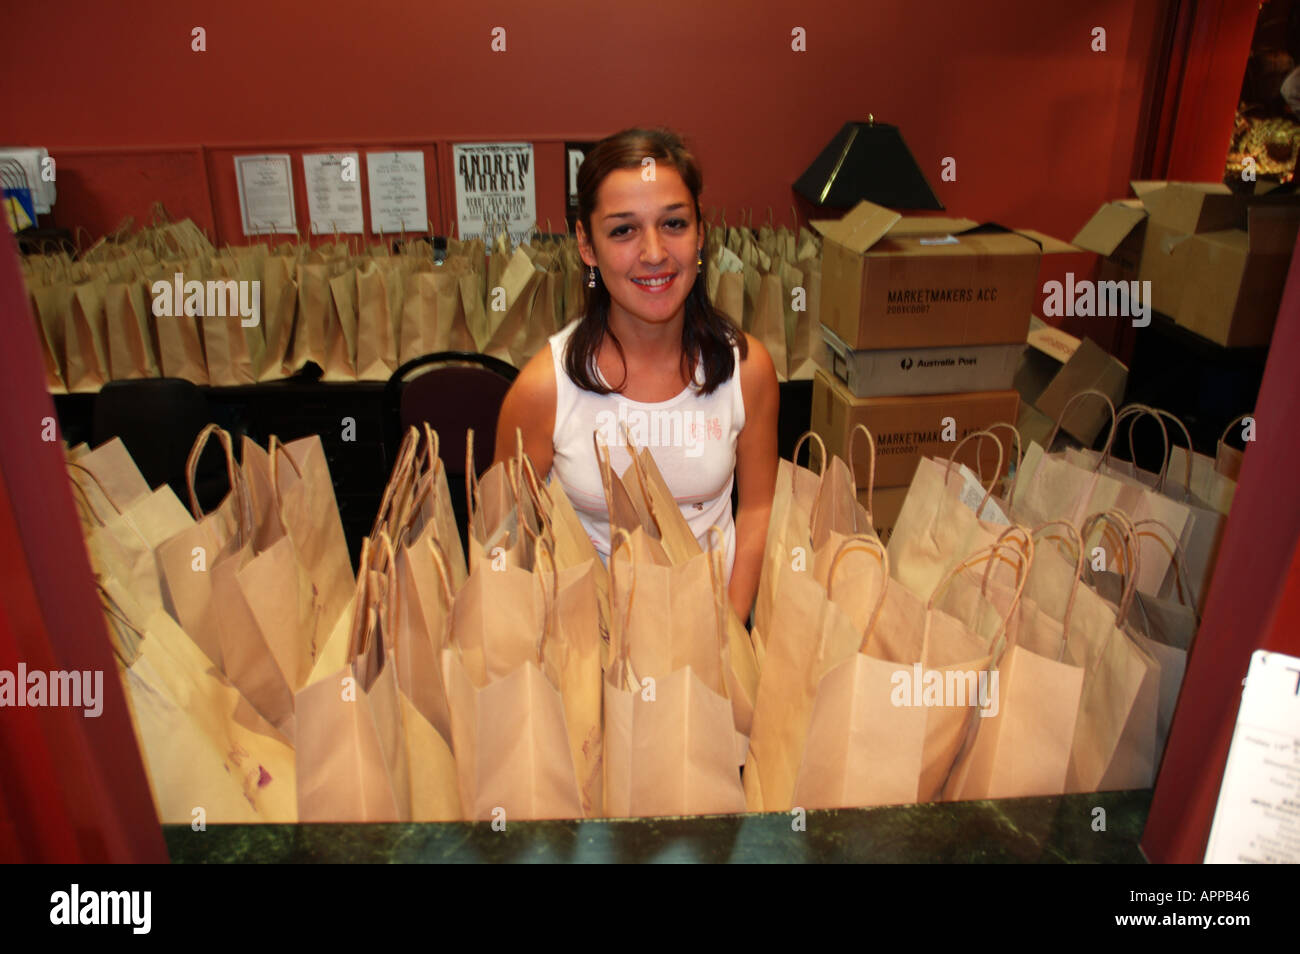 Sample bags ready to be given away Ki Festival Brisbane Queensland Australia dsc 8503 - Stock Image